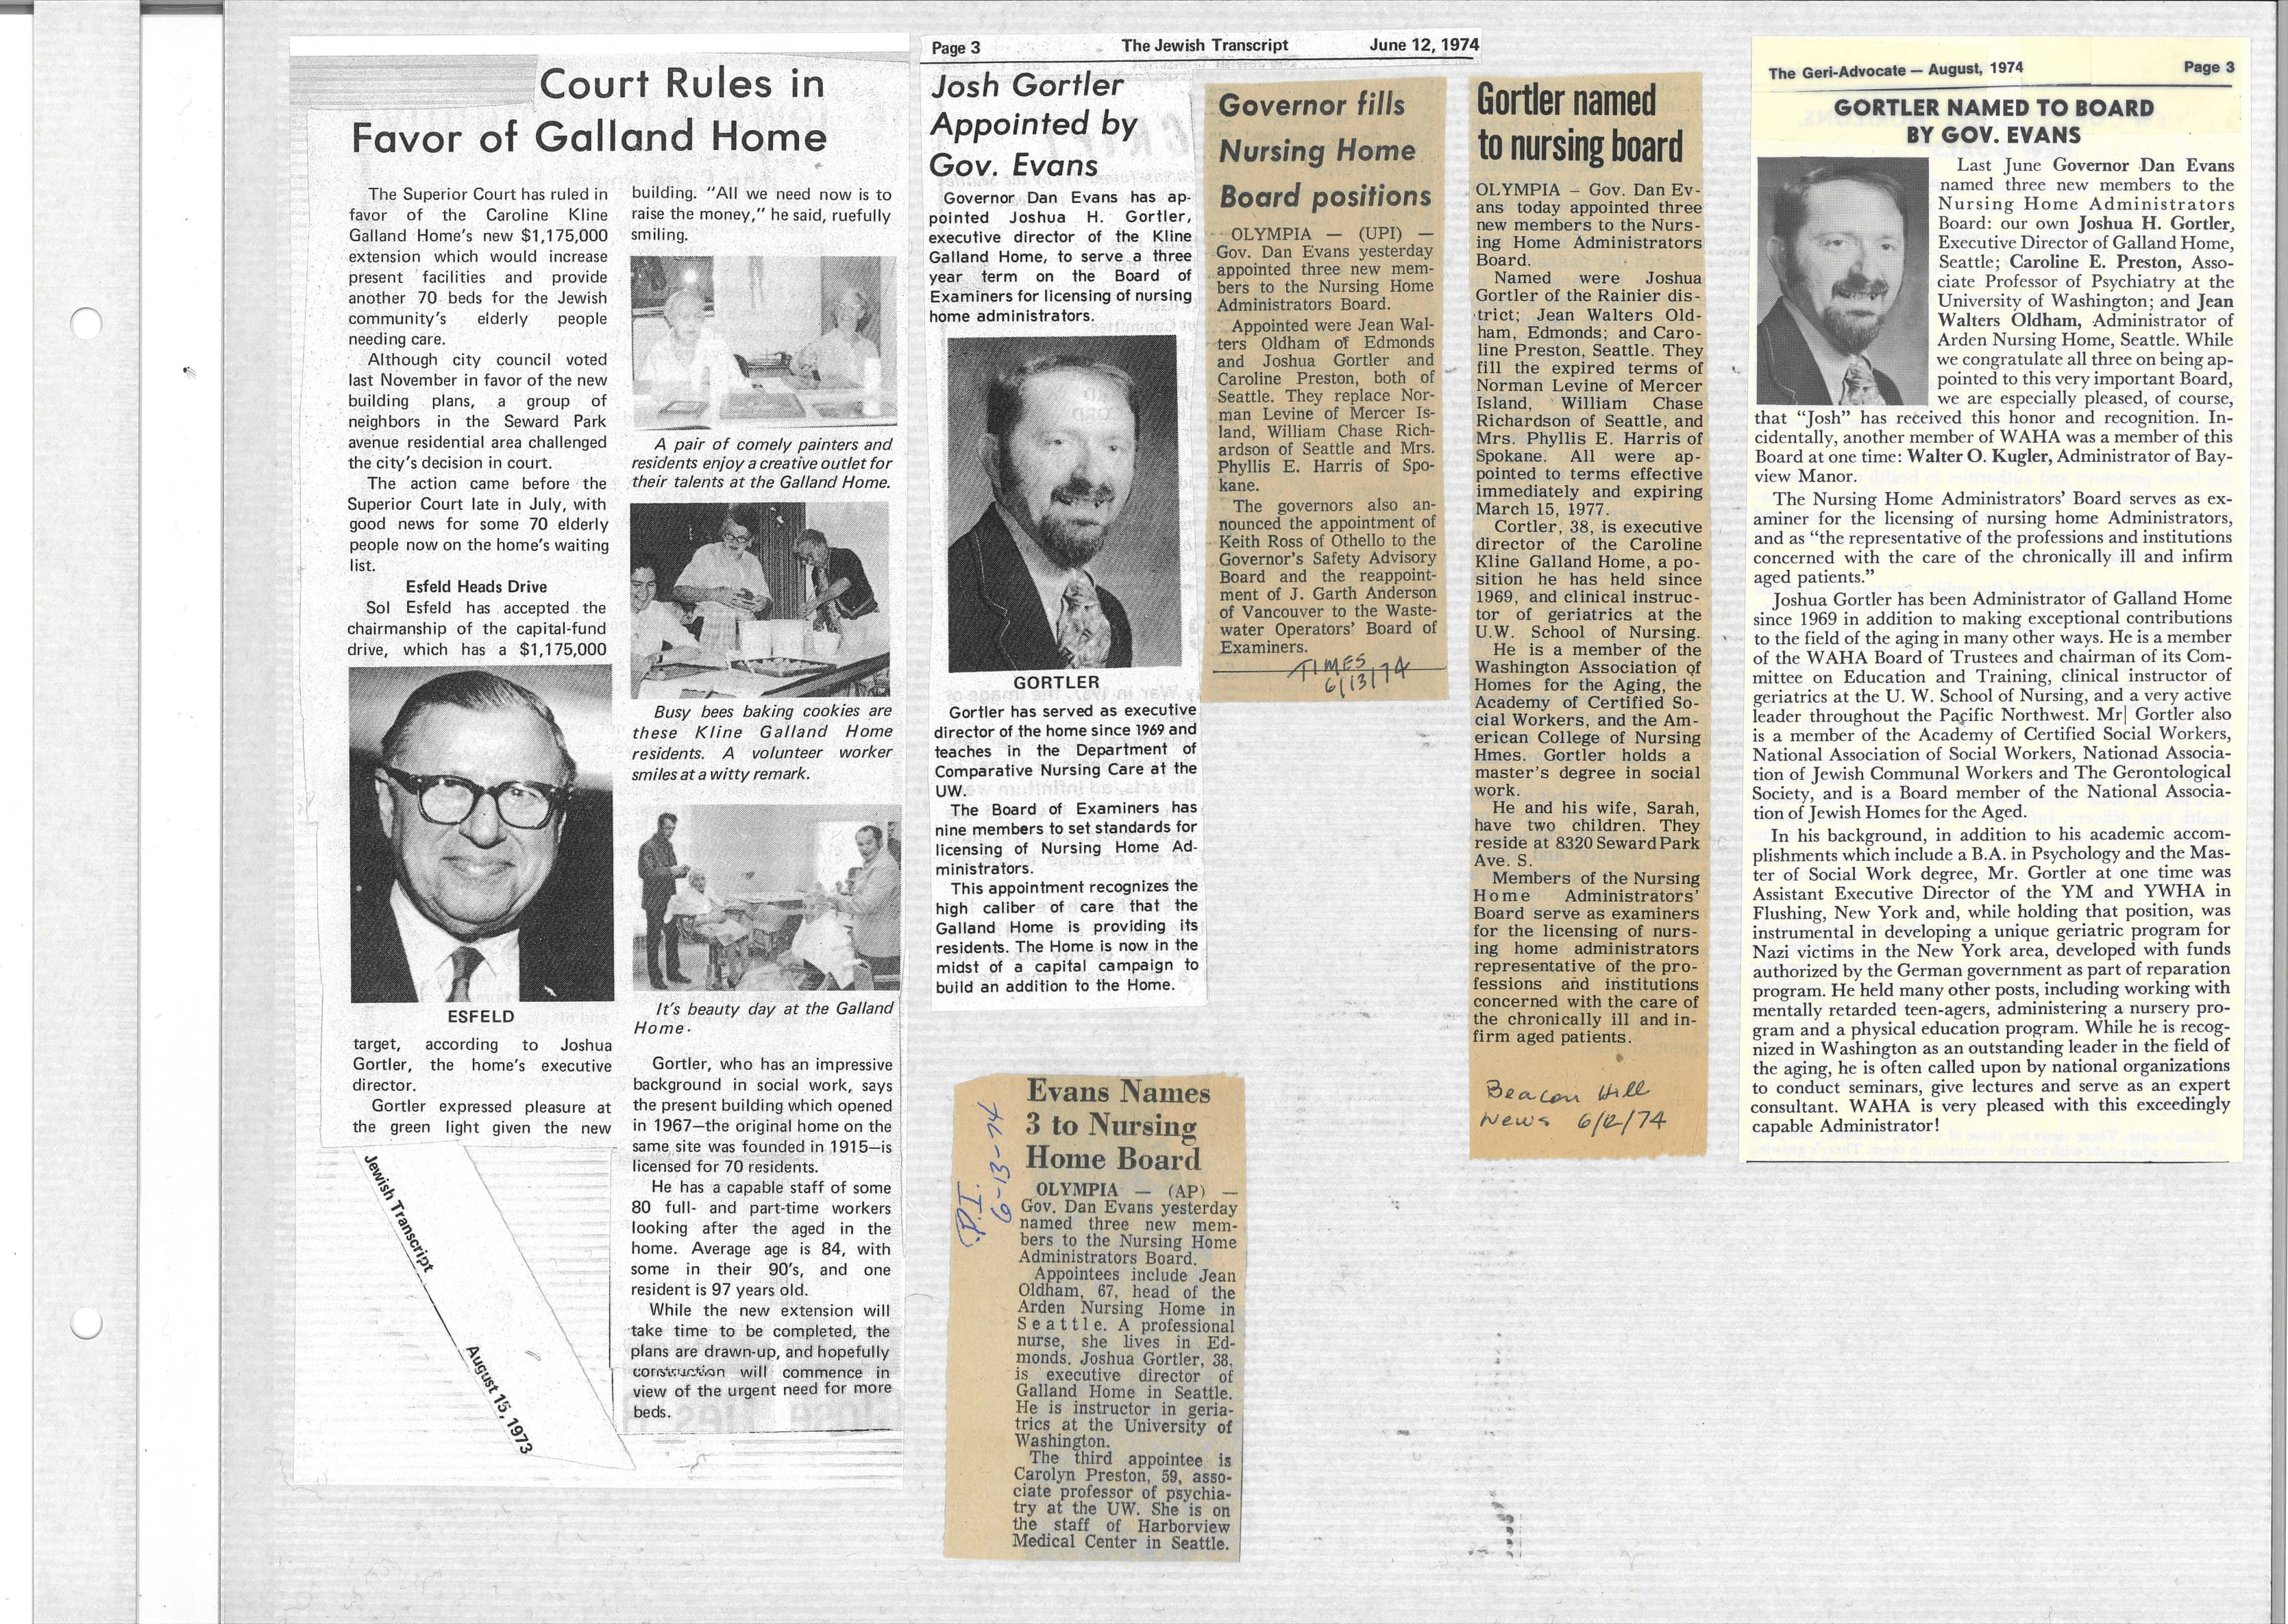 Gortler appointed to the Nursing Home Administrator's Board (June 1974)